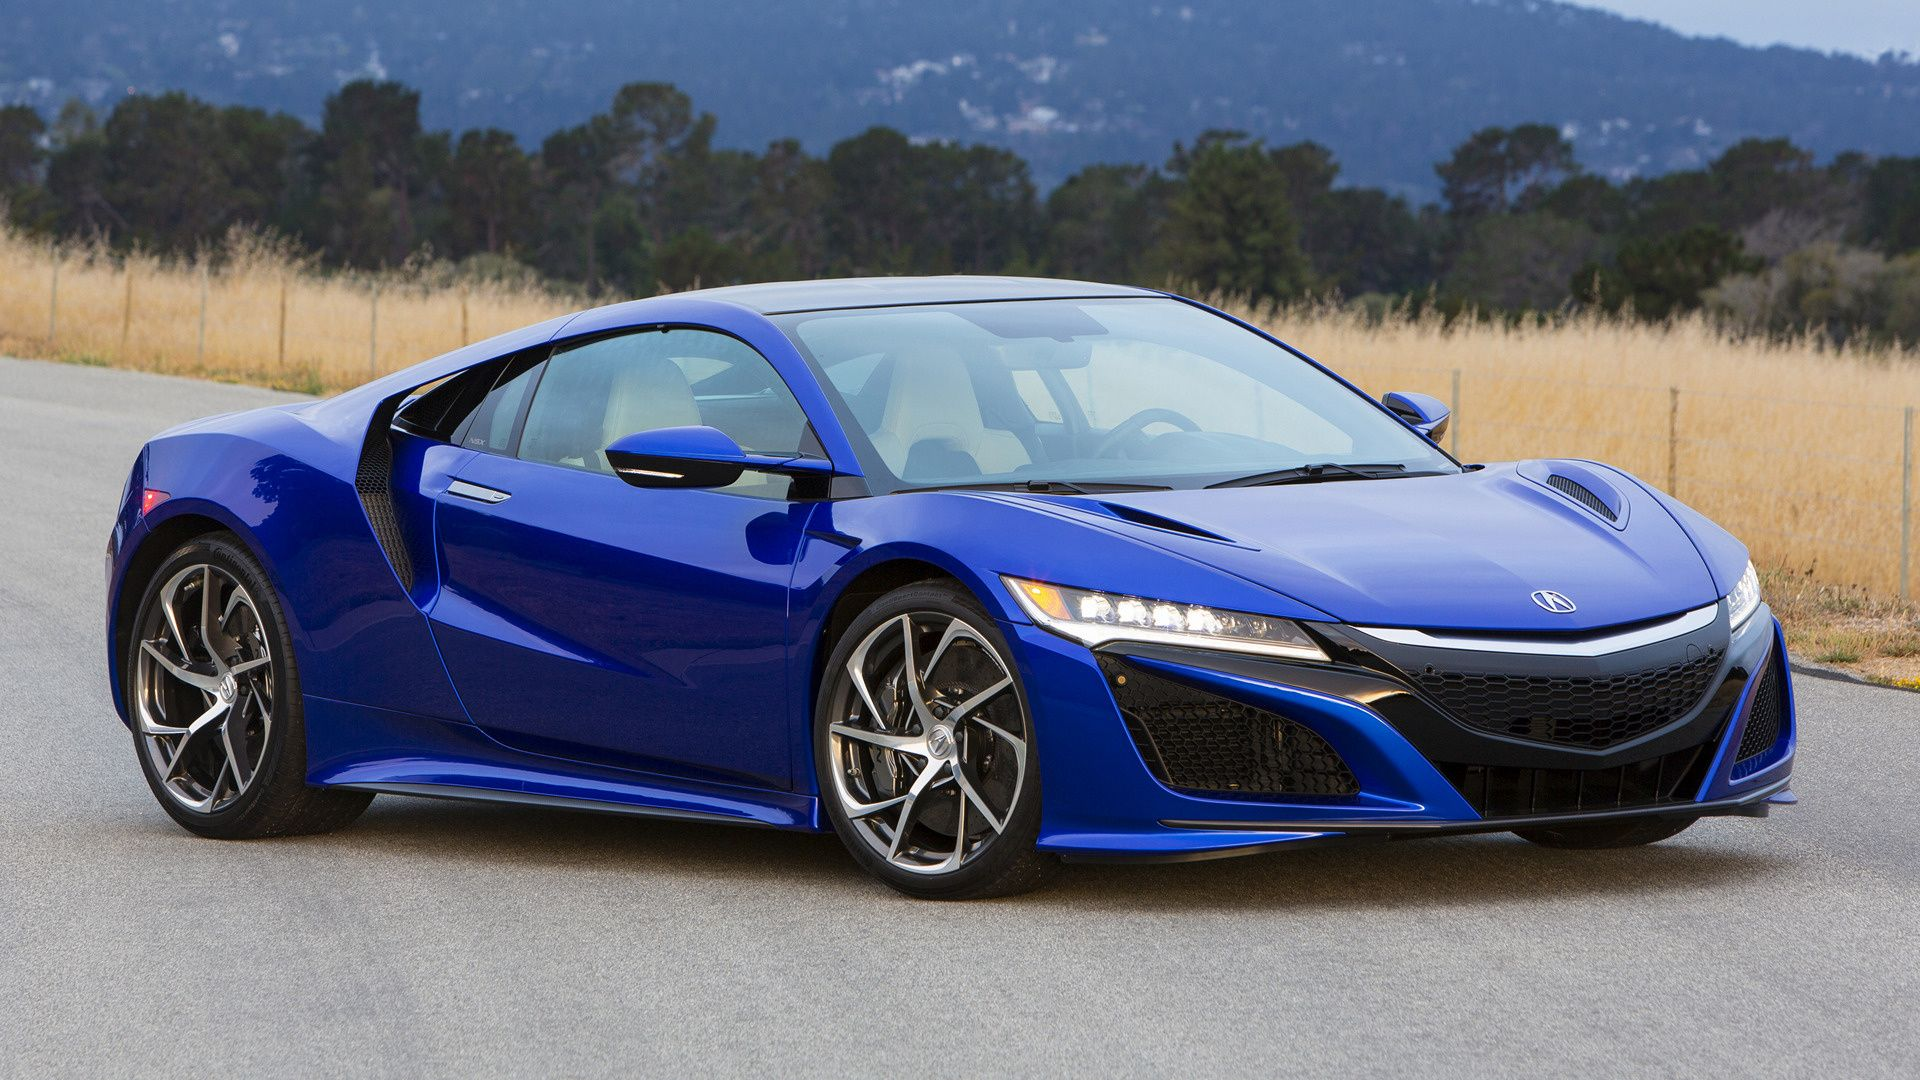 Acura nsx wallpapers get free top quality acura nsx wallpapers for your desktop pc background